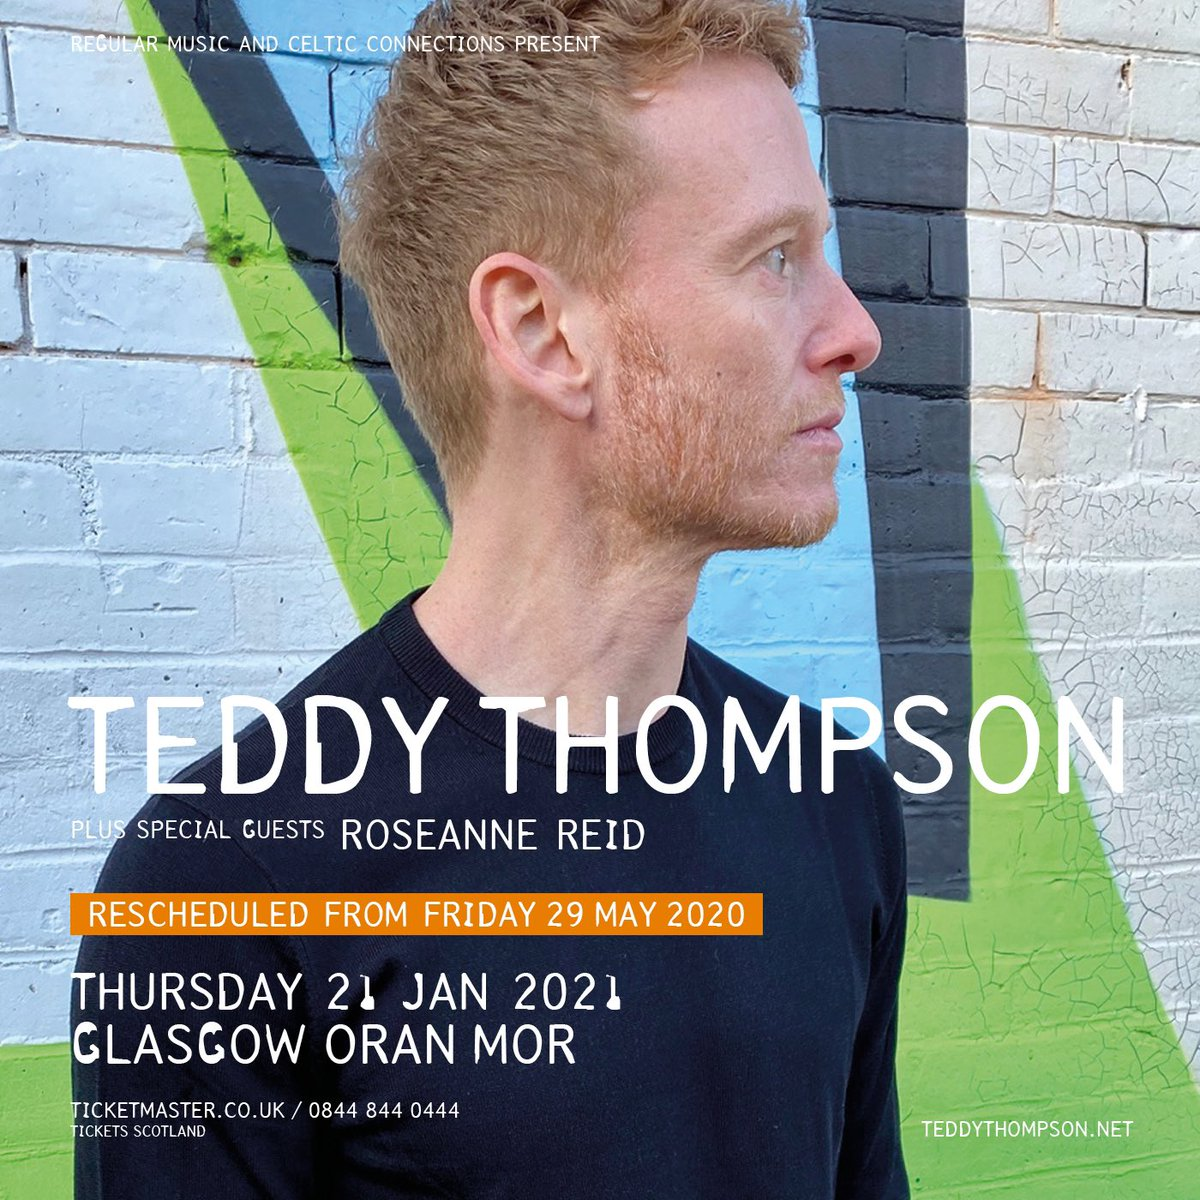 RESCHEDULED SHOW/// @teddythompson at @OranMorGlasgow has been moved to Thursday 21 January 2021.   With special guest @roseanne_reid.  Original tickets remain valid.  As part of @ccfest. https://t.co/abScnC1oCC